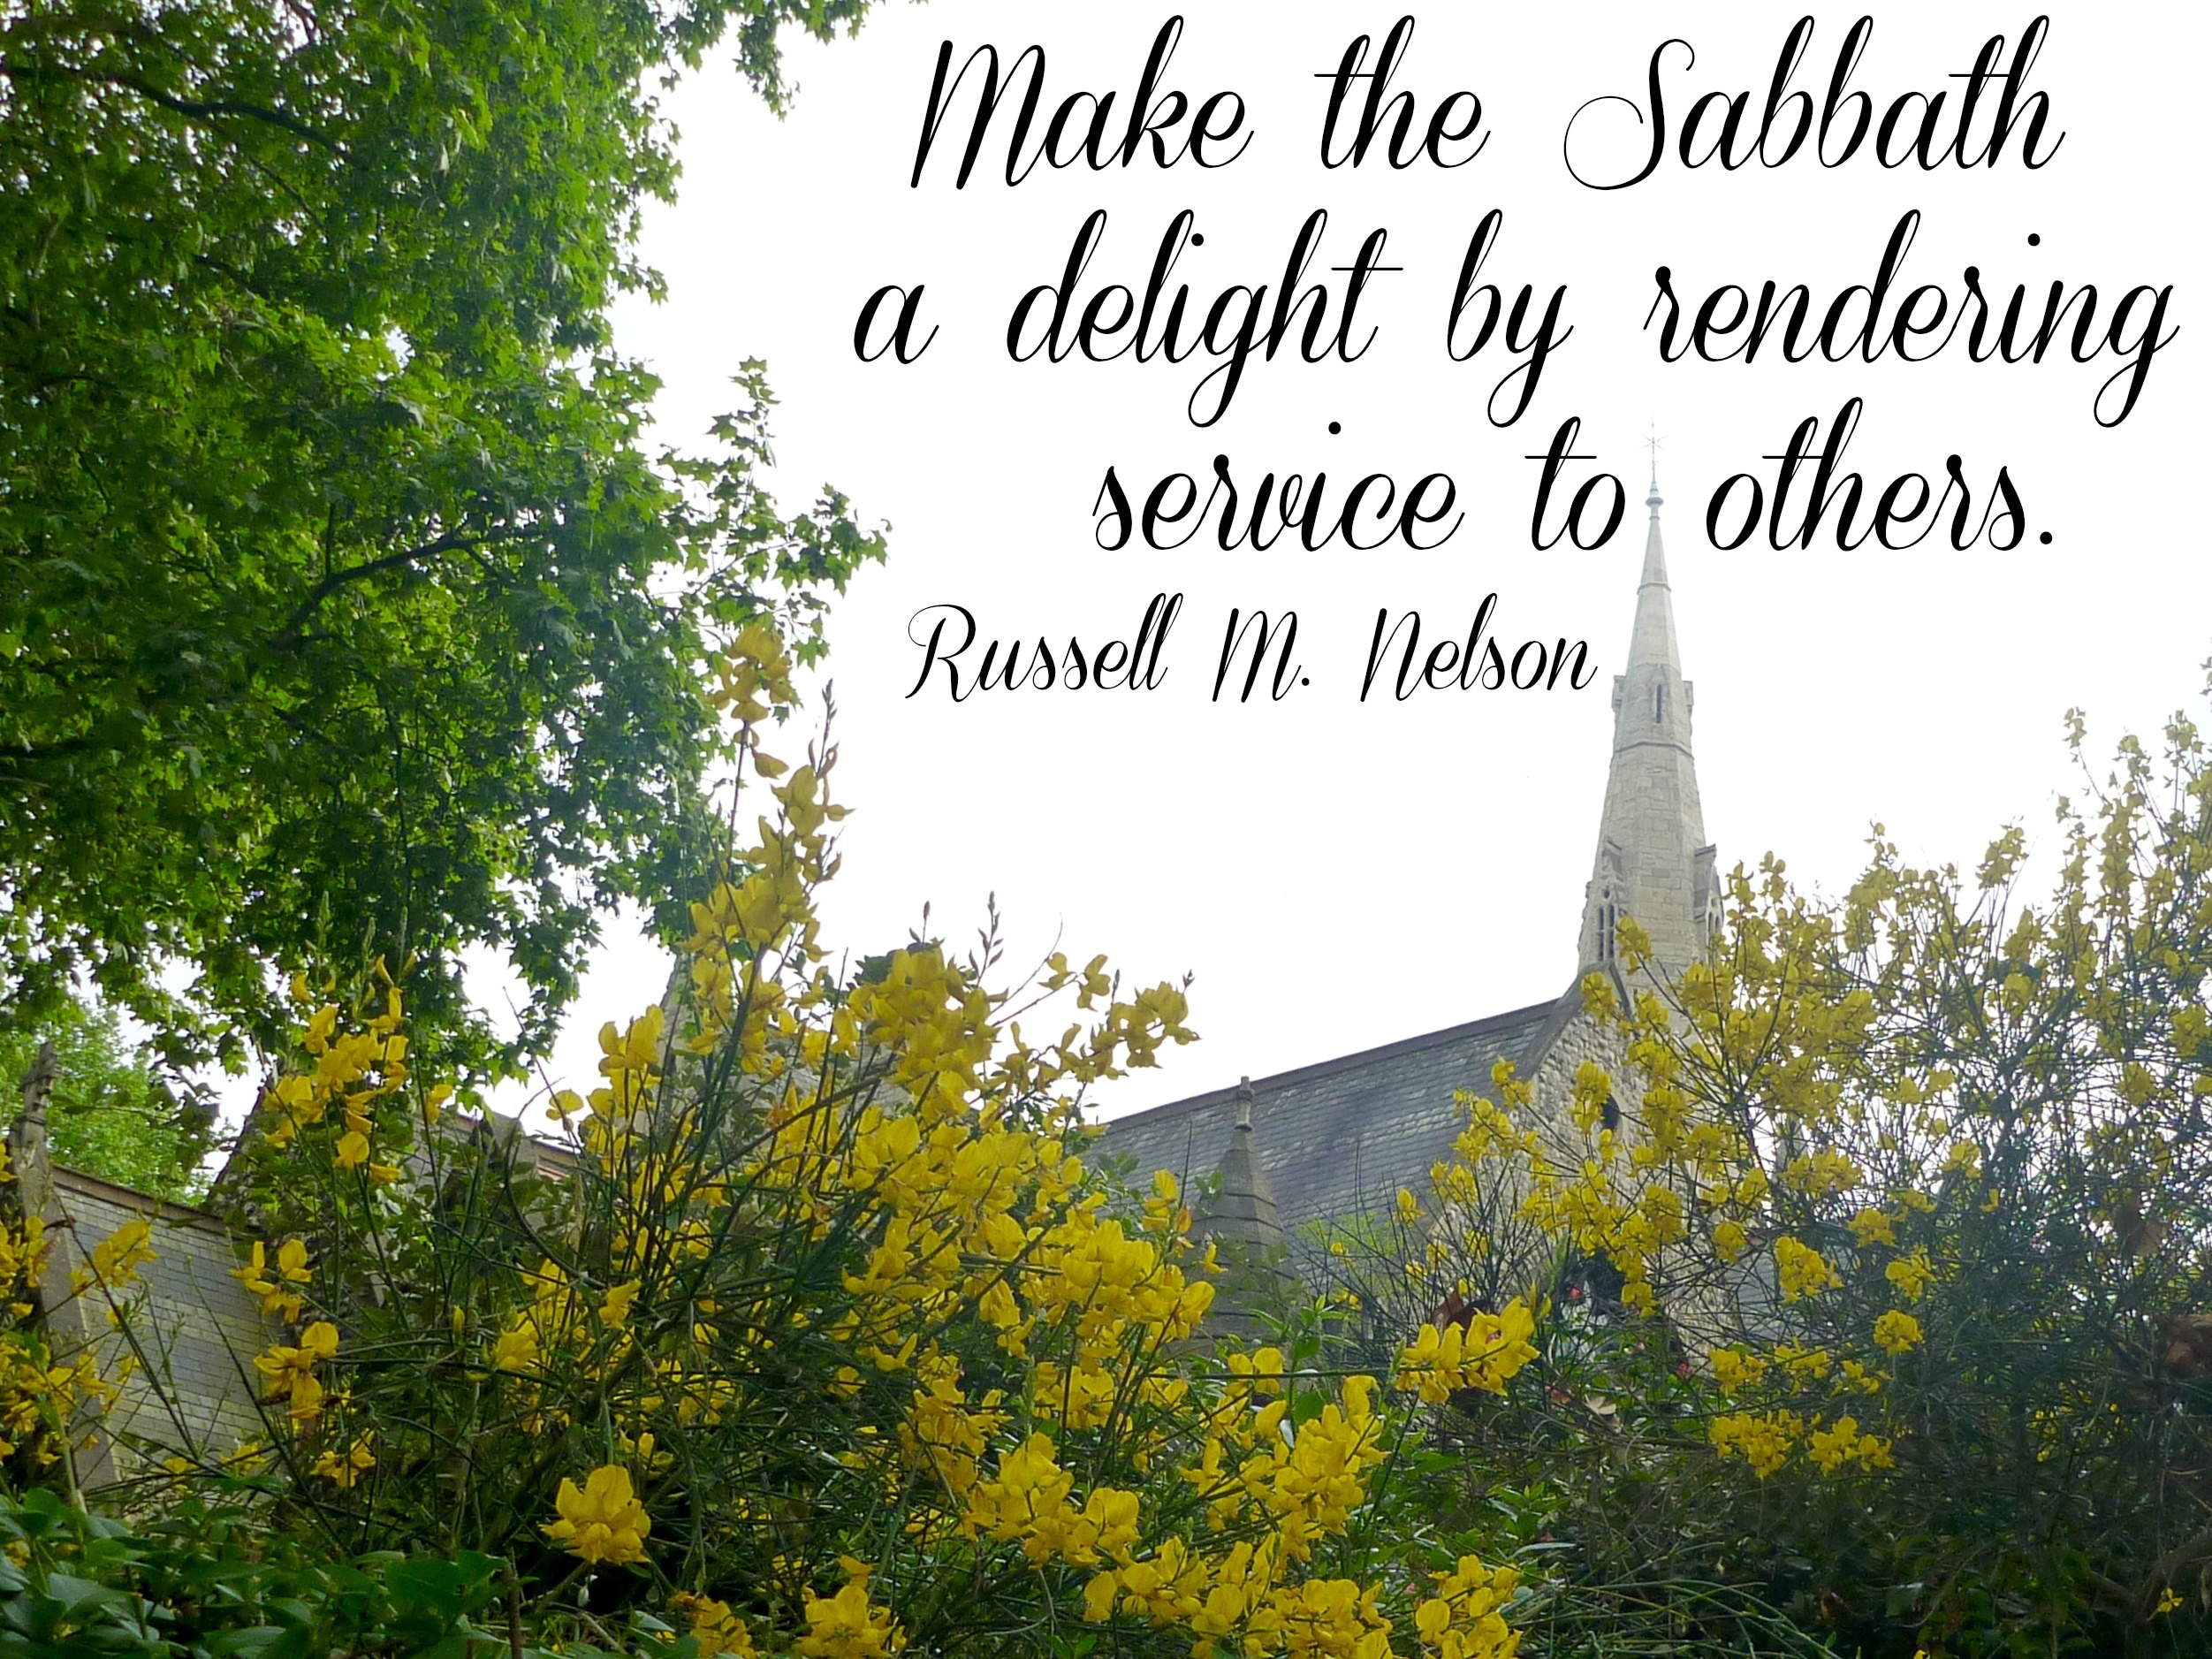 Make the Sabbath a Delight